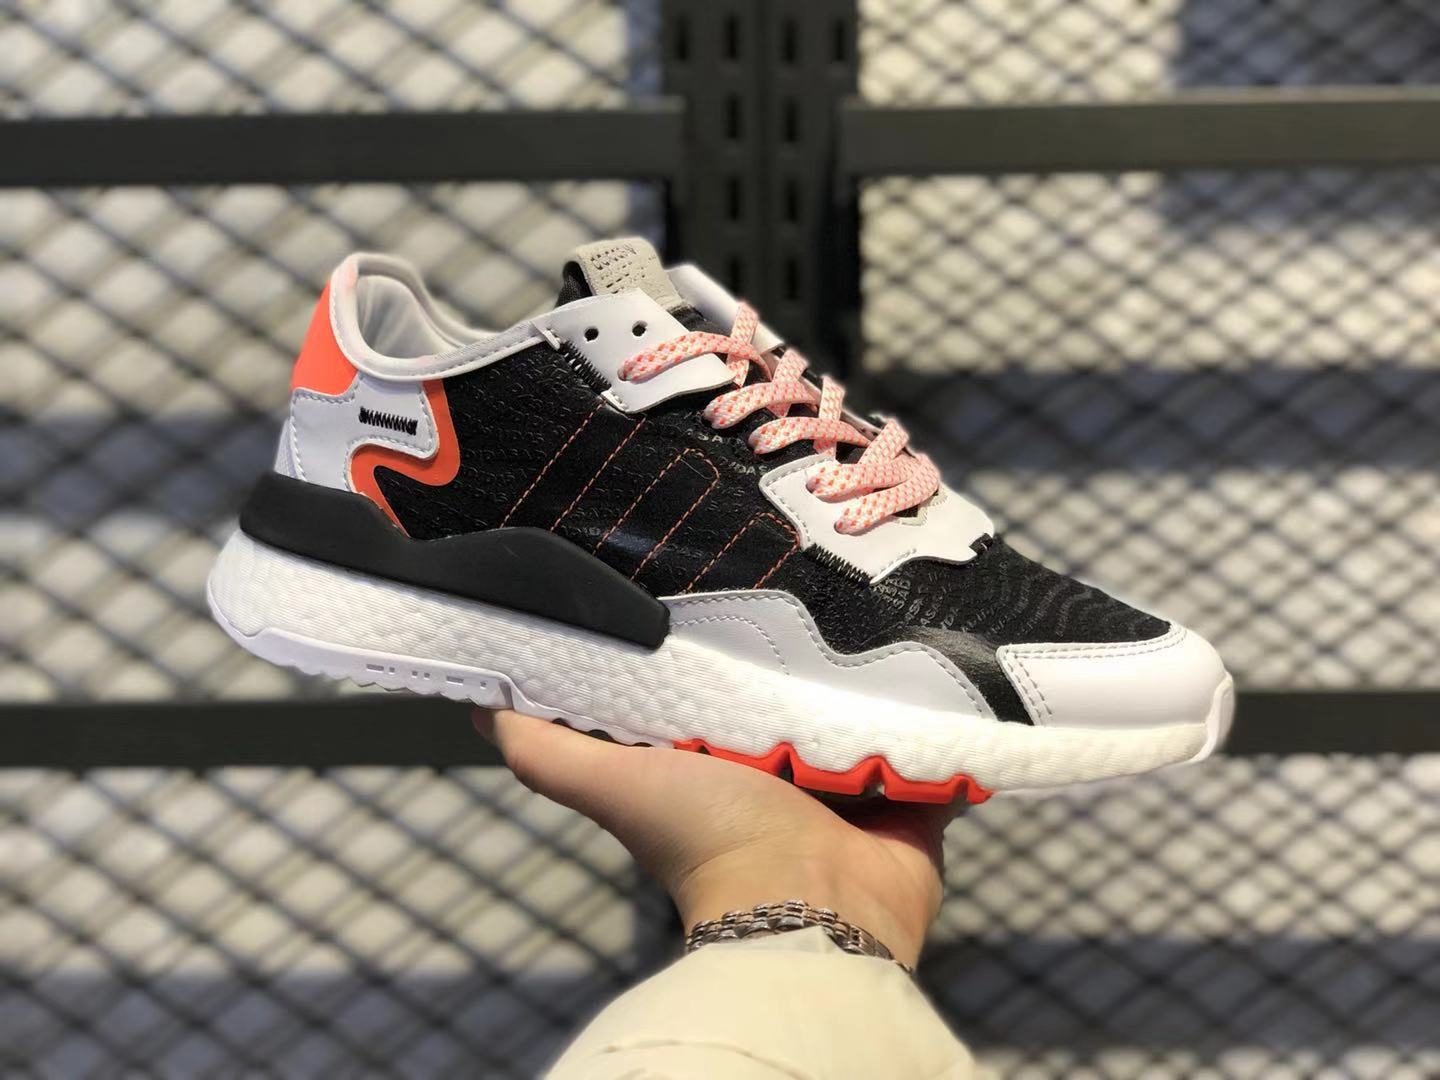 Adidas Nite Jogger Cloud White/Core Black-Solar Orange Hot Sale FU6842